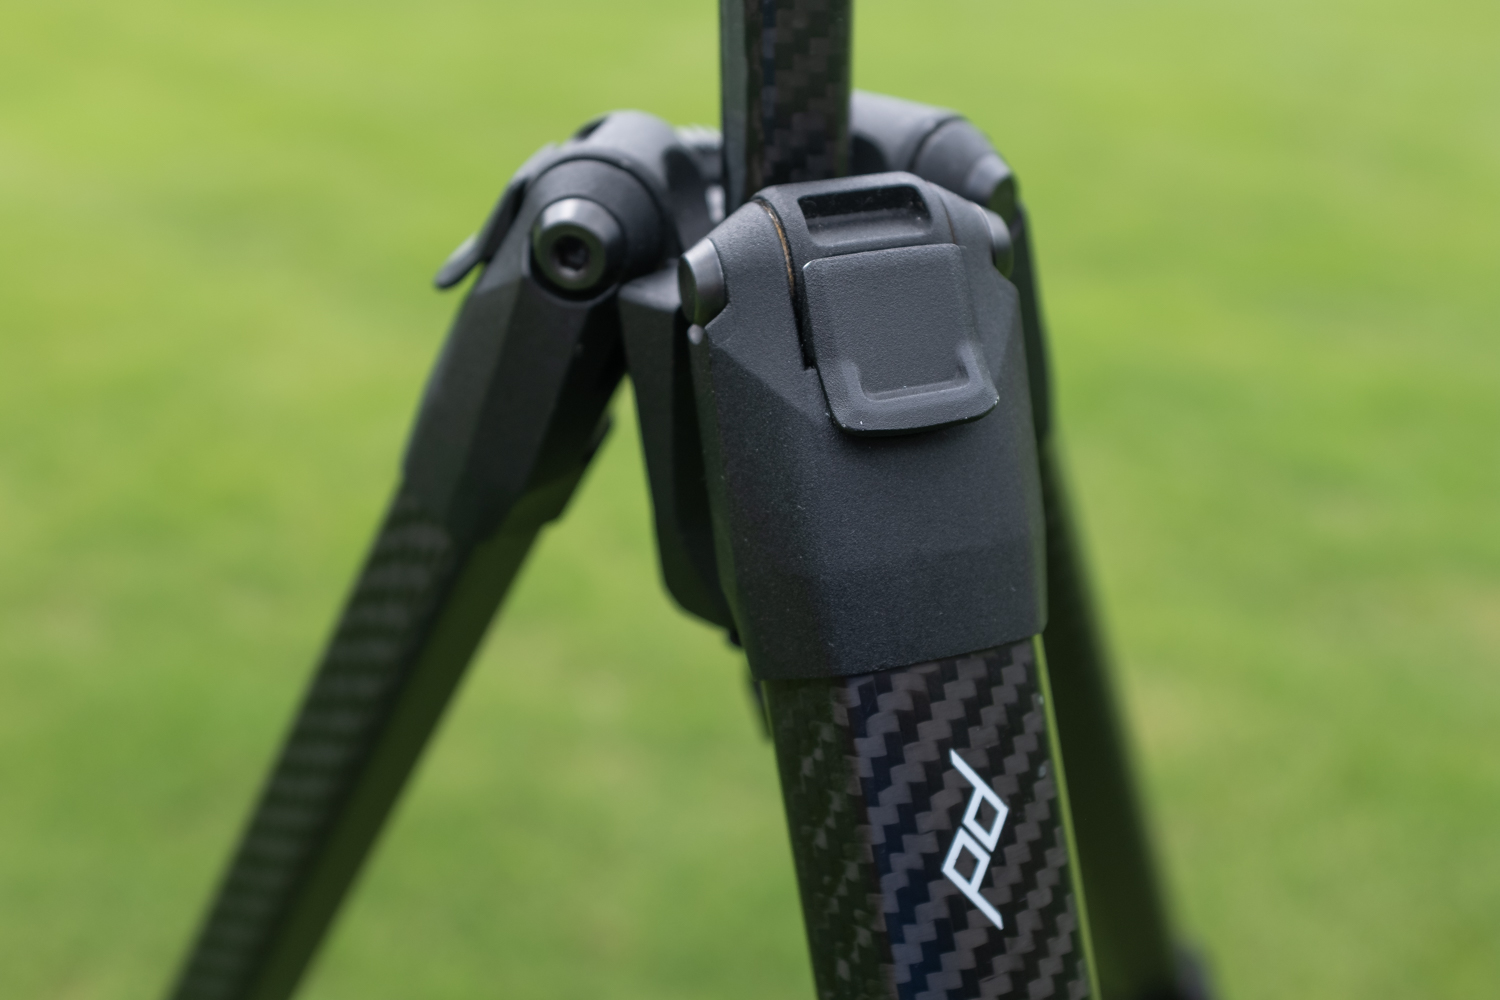 peak-design-travel-tripod-review-3